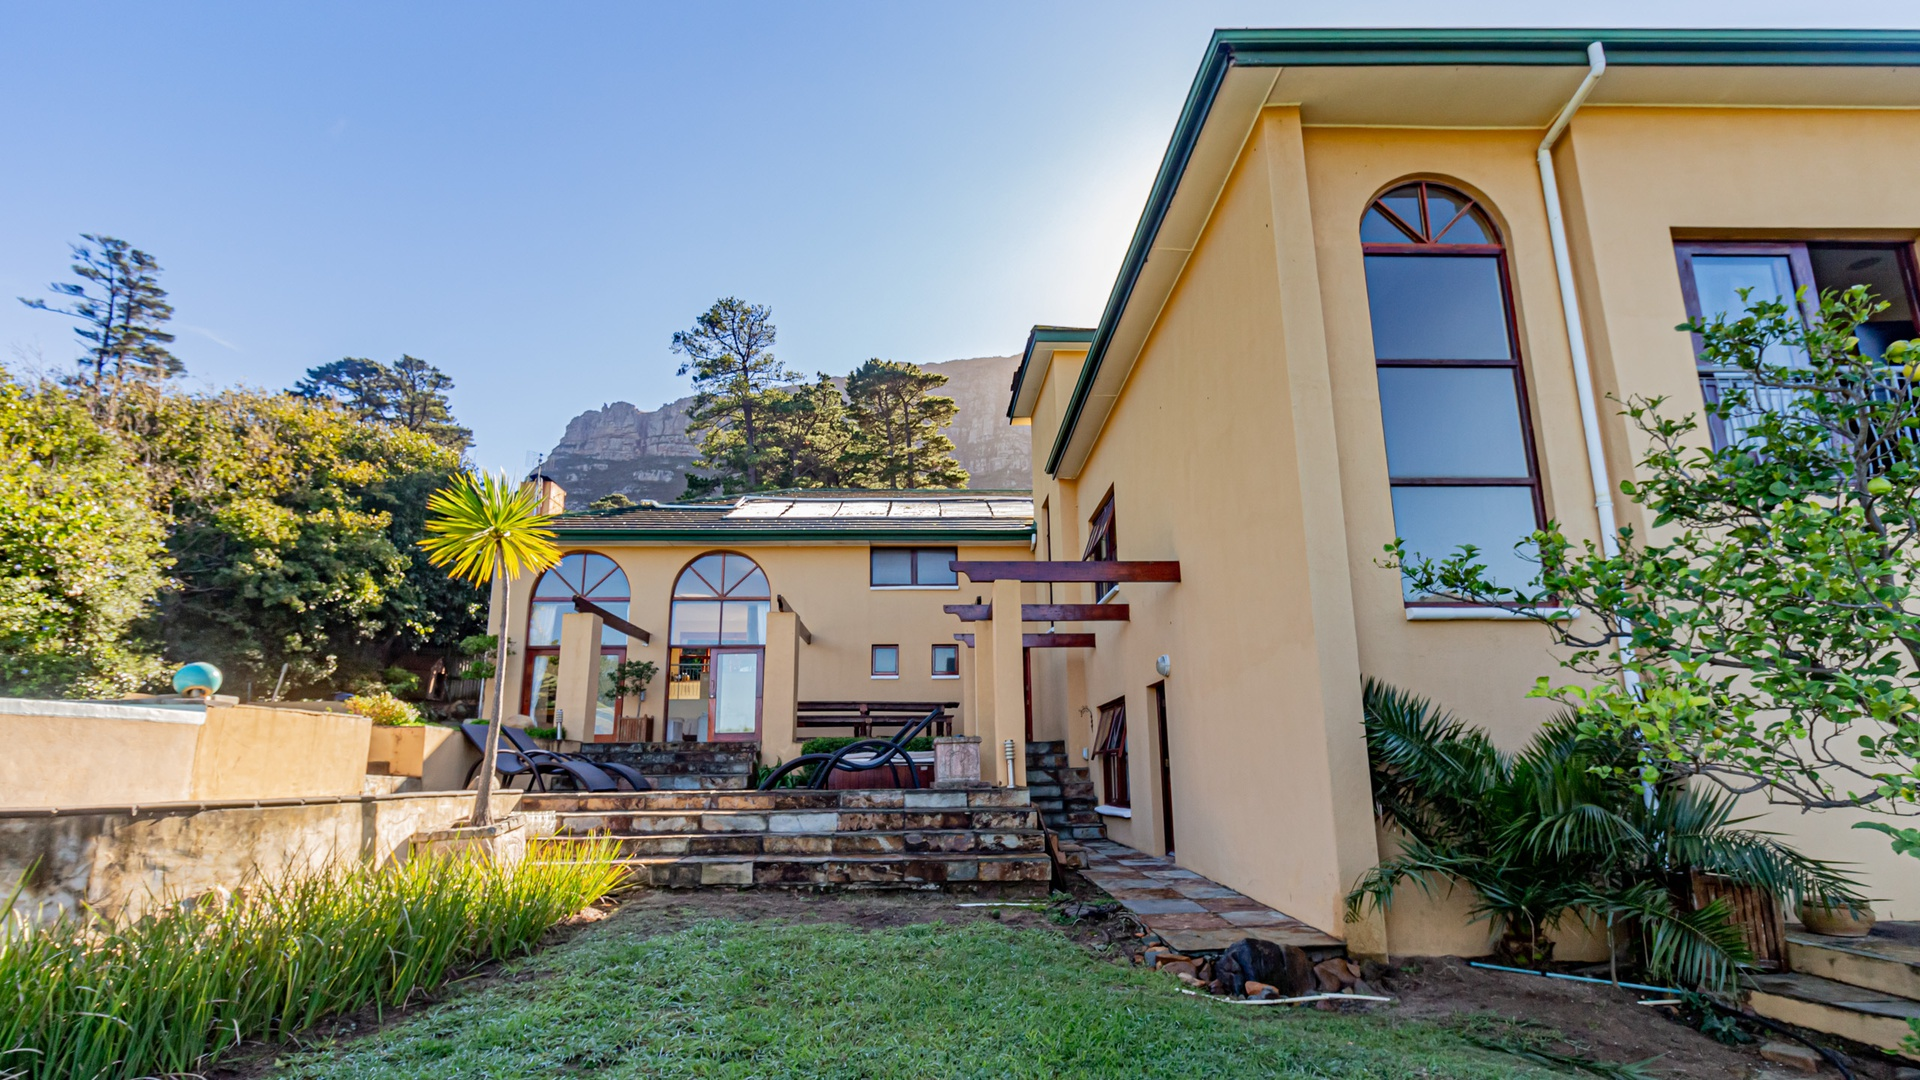 House in Hout Bay - Image-038.jpg